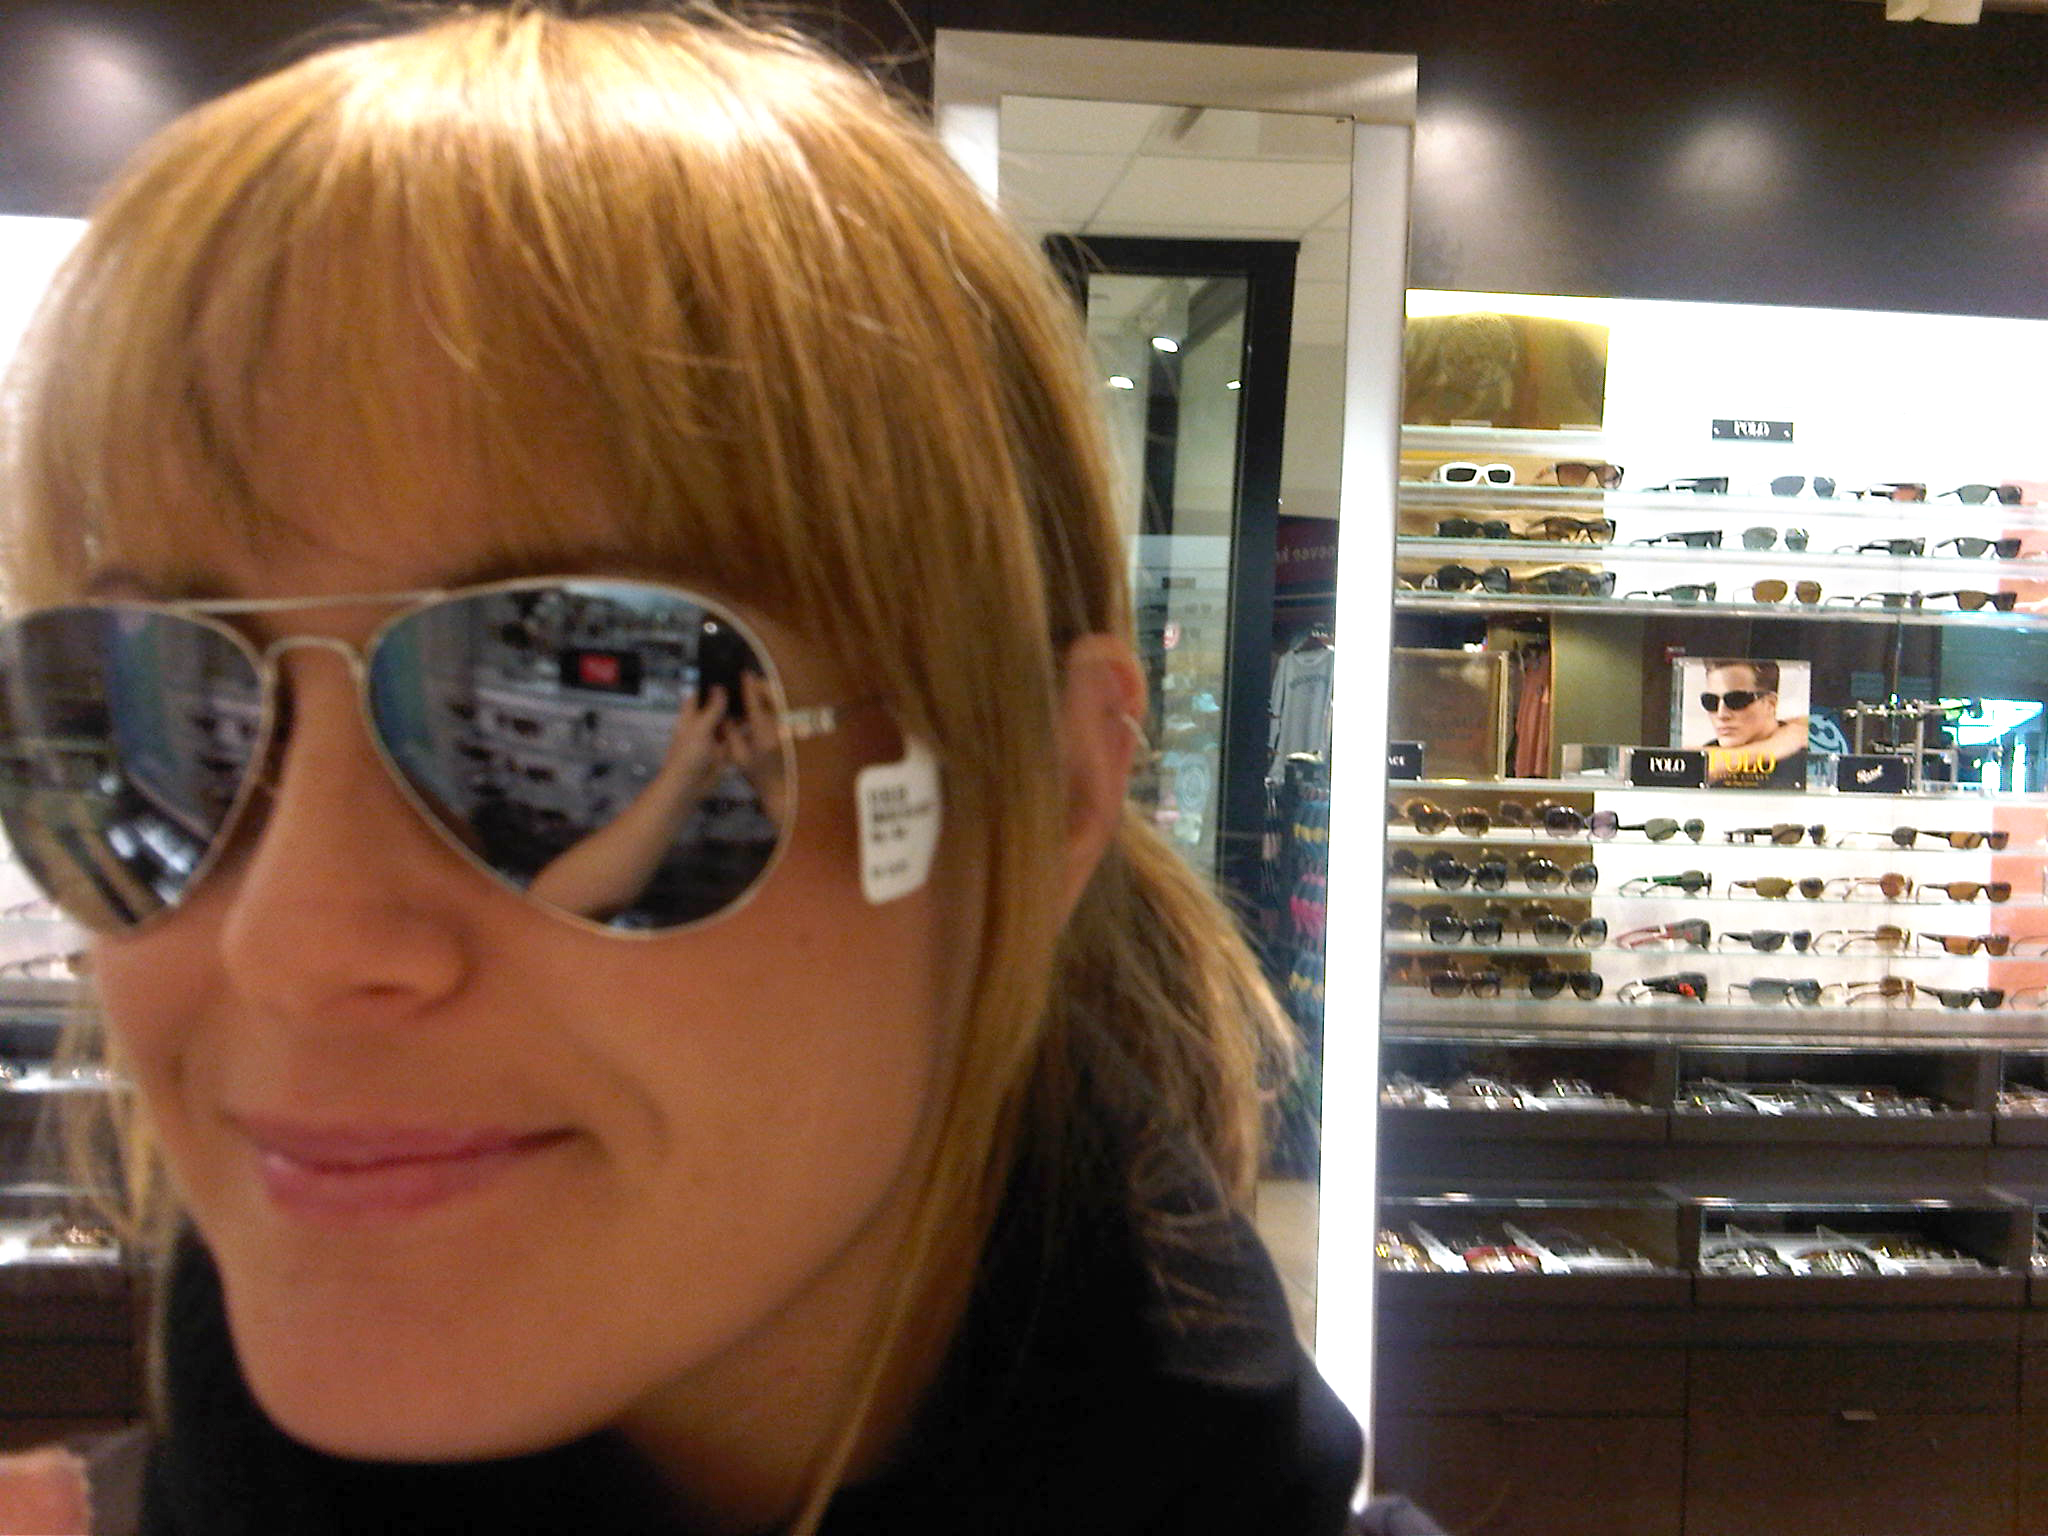 ray ban large metal  Sunglass Options for the Summer (it\u0027s coming, right?) - Fashables